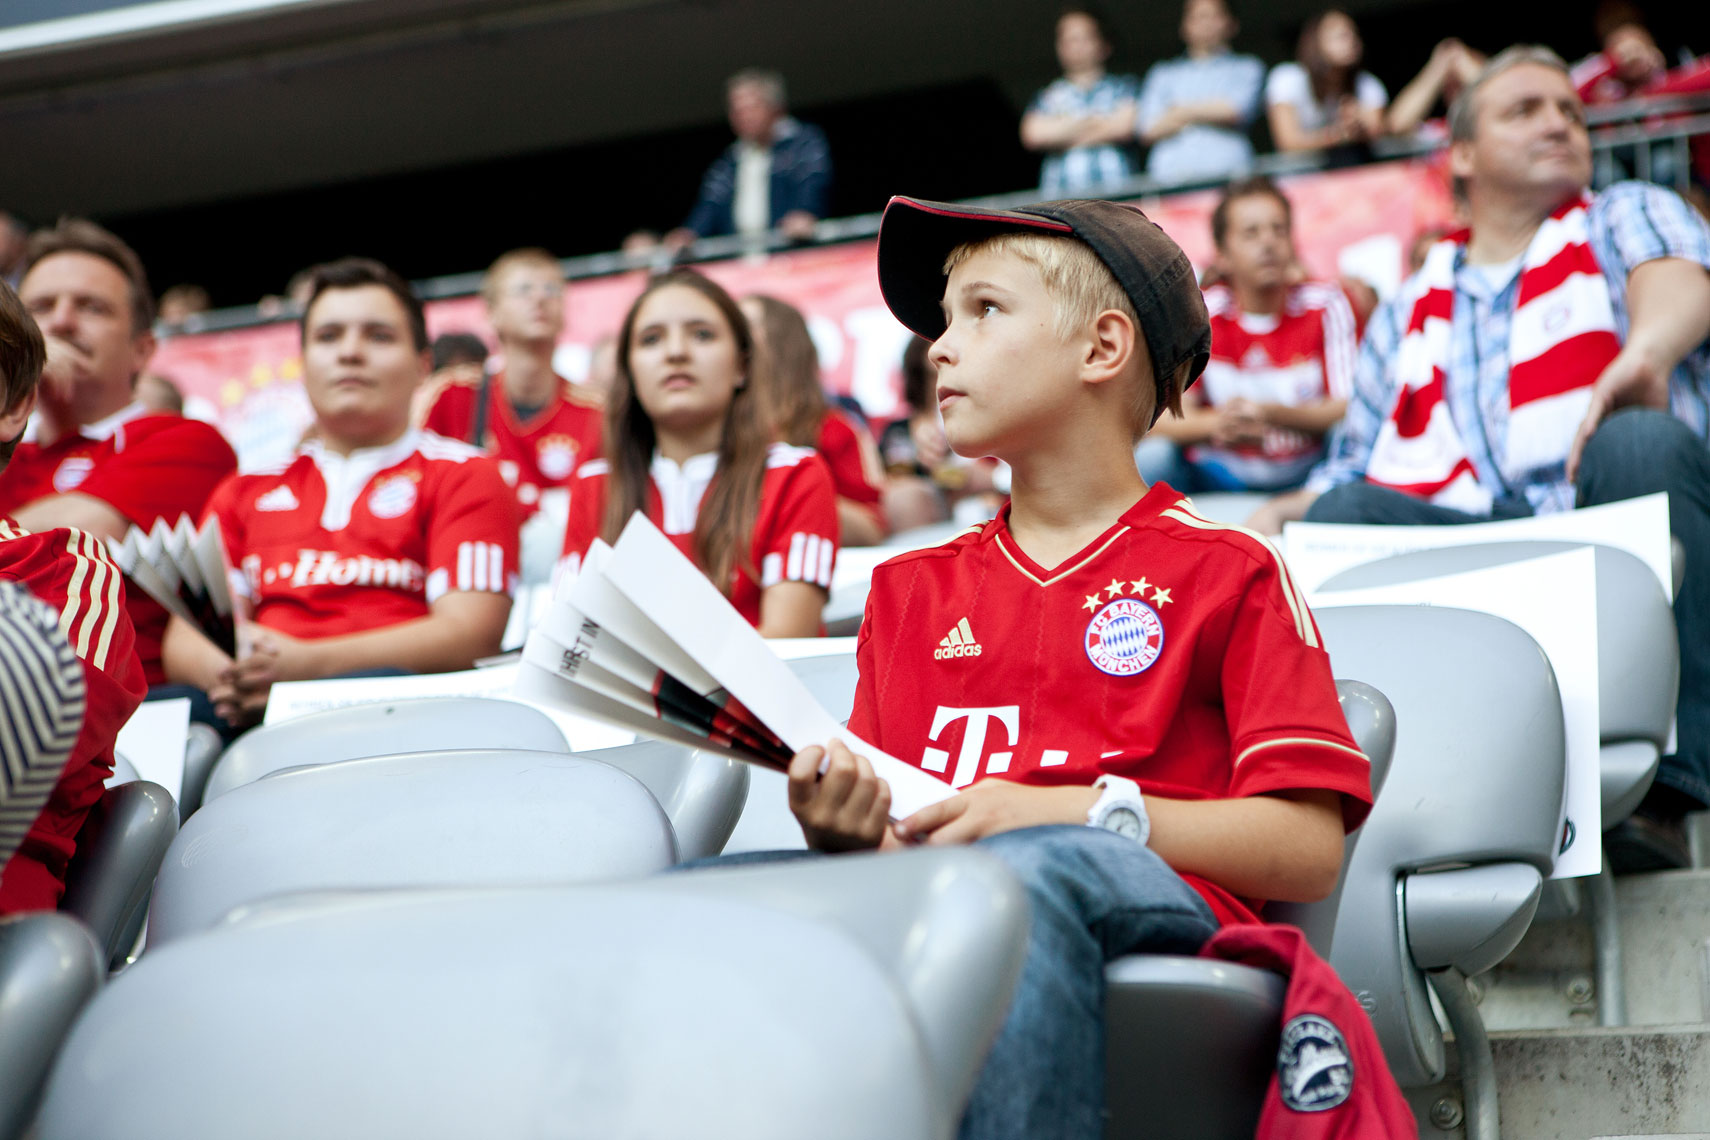 Fiat_Supercup_Allianz_Arena_03